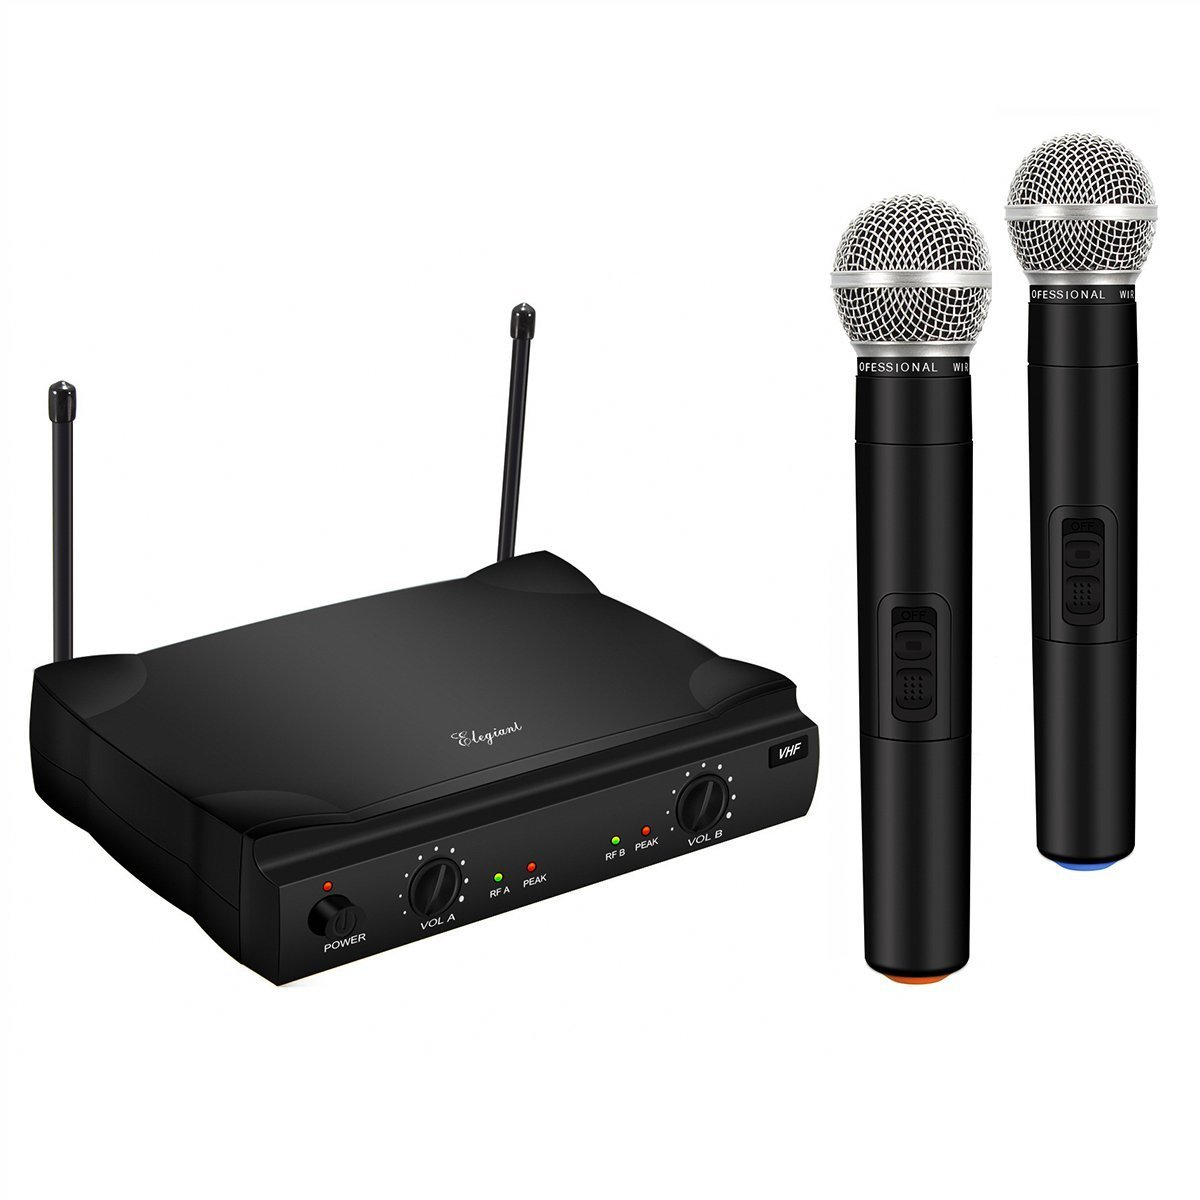 ELEGIANT VHF Wireless Microphone System with 2 Handheld Mics, Dual Channel Karaoke Singing Machine Portable Professional Home KTV Set Black